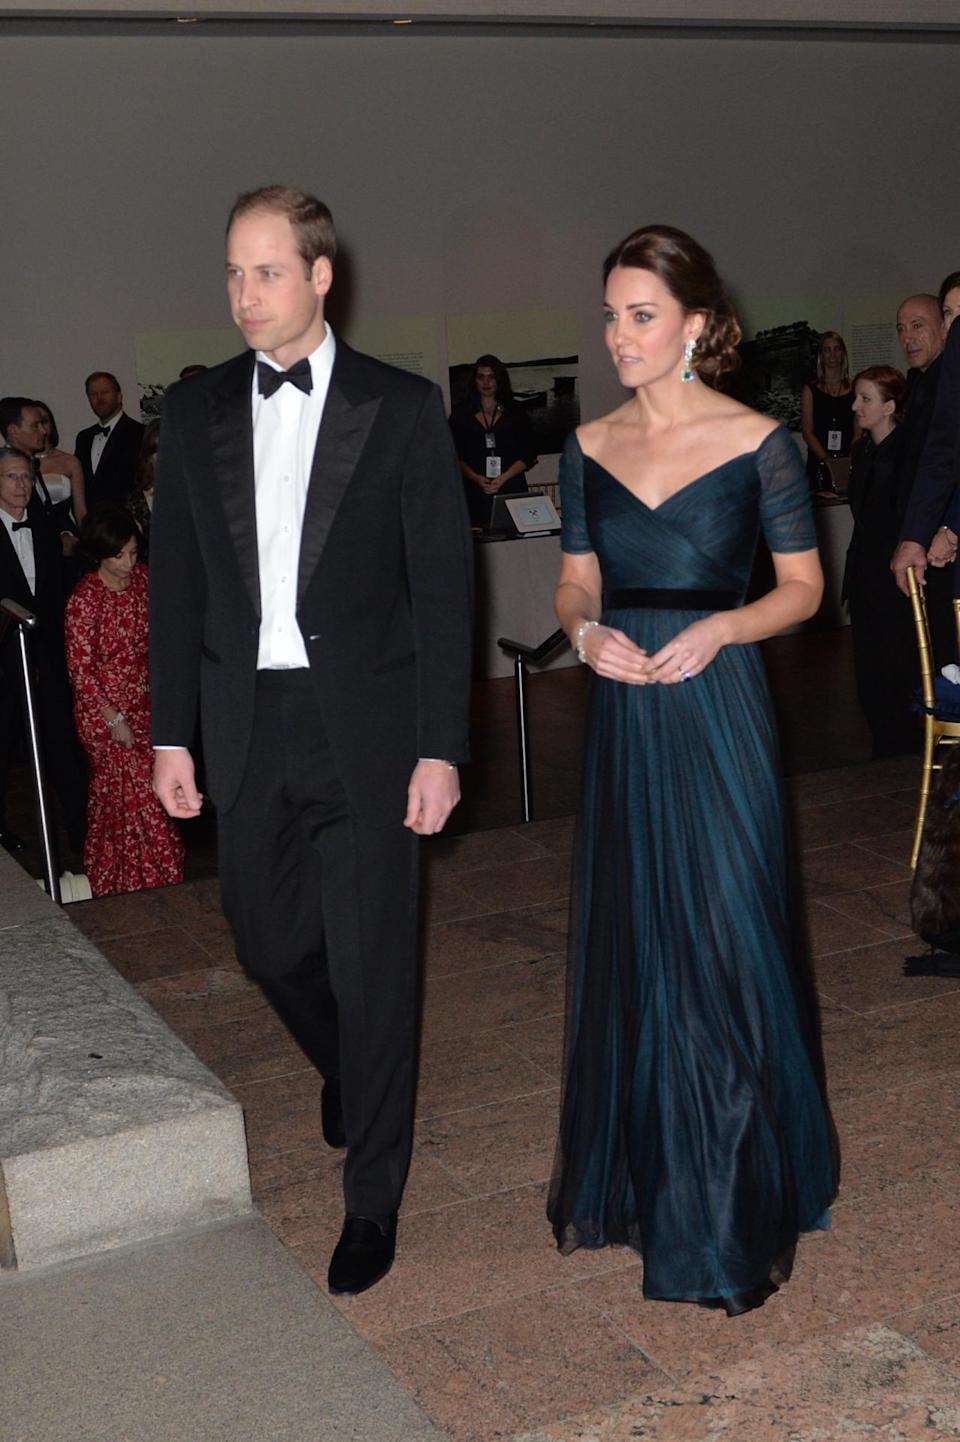 <p>For a gala at the Met Museum in New York, Kate chose a petrol blue Jenny Packham gown and black Jimmy Choo stilettos. </p><p><i>[Photo: PA]</i></p>